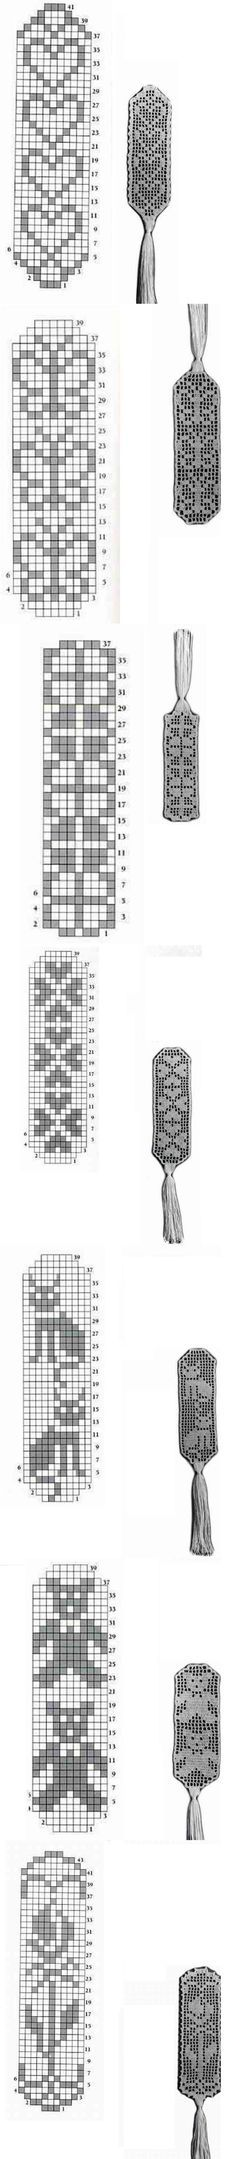 filet crochet - lovely bookmarks - easy-to-do present! (could use as decoration too!)